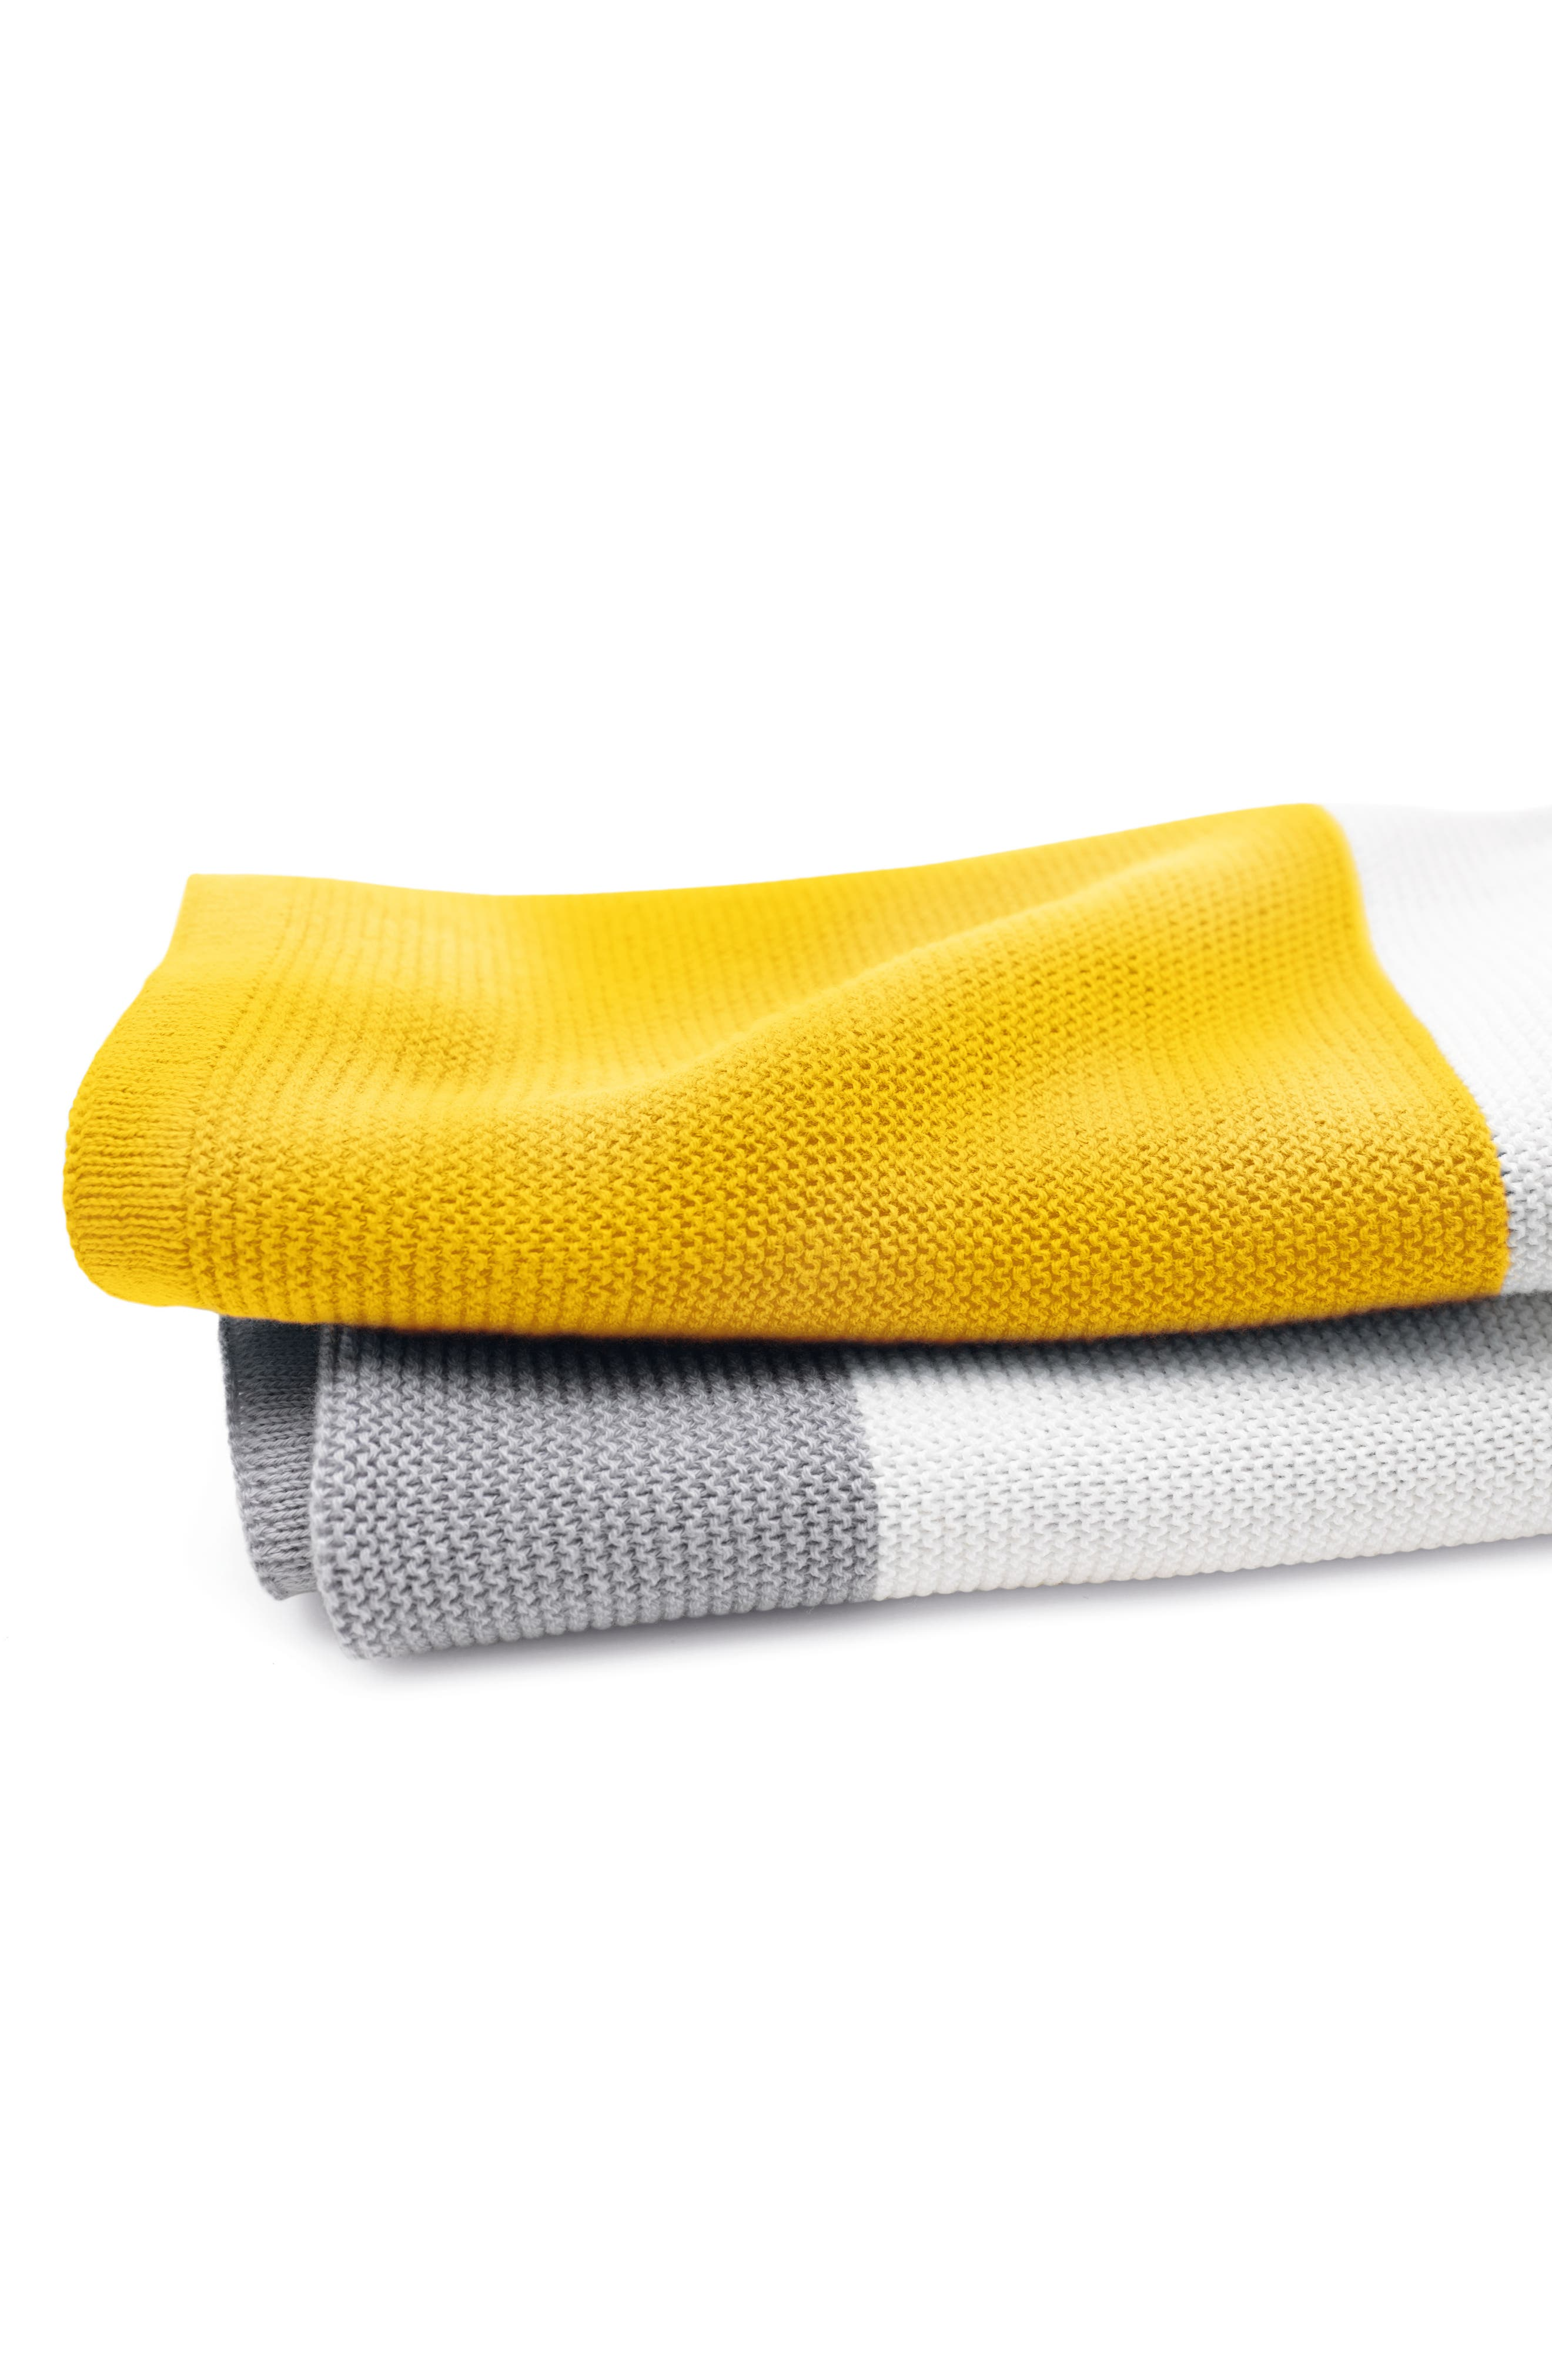 Light Cotton Blanket,                             Alternate thumbnail 2, color,                             Bright Yellow